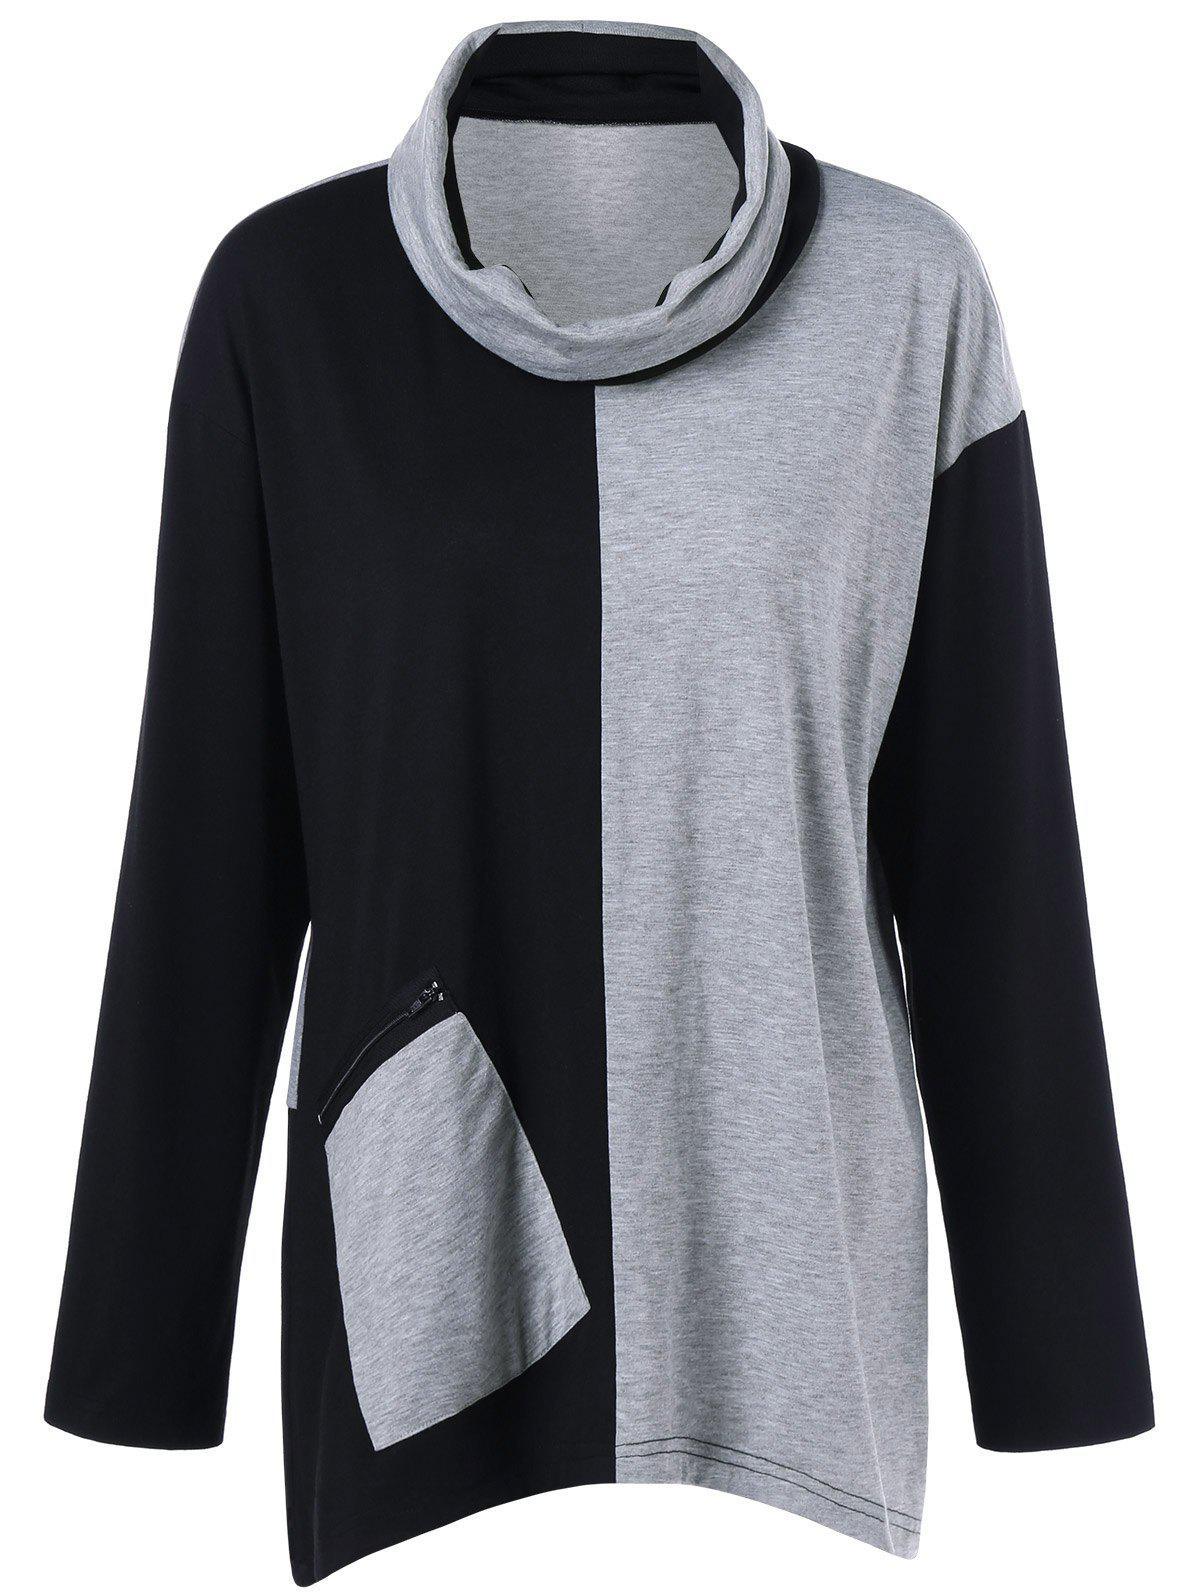 Plus Size Cowl Neck Zip Pocket T-Shirt plus size colorblock cowl neck t shirt